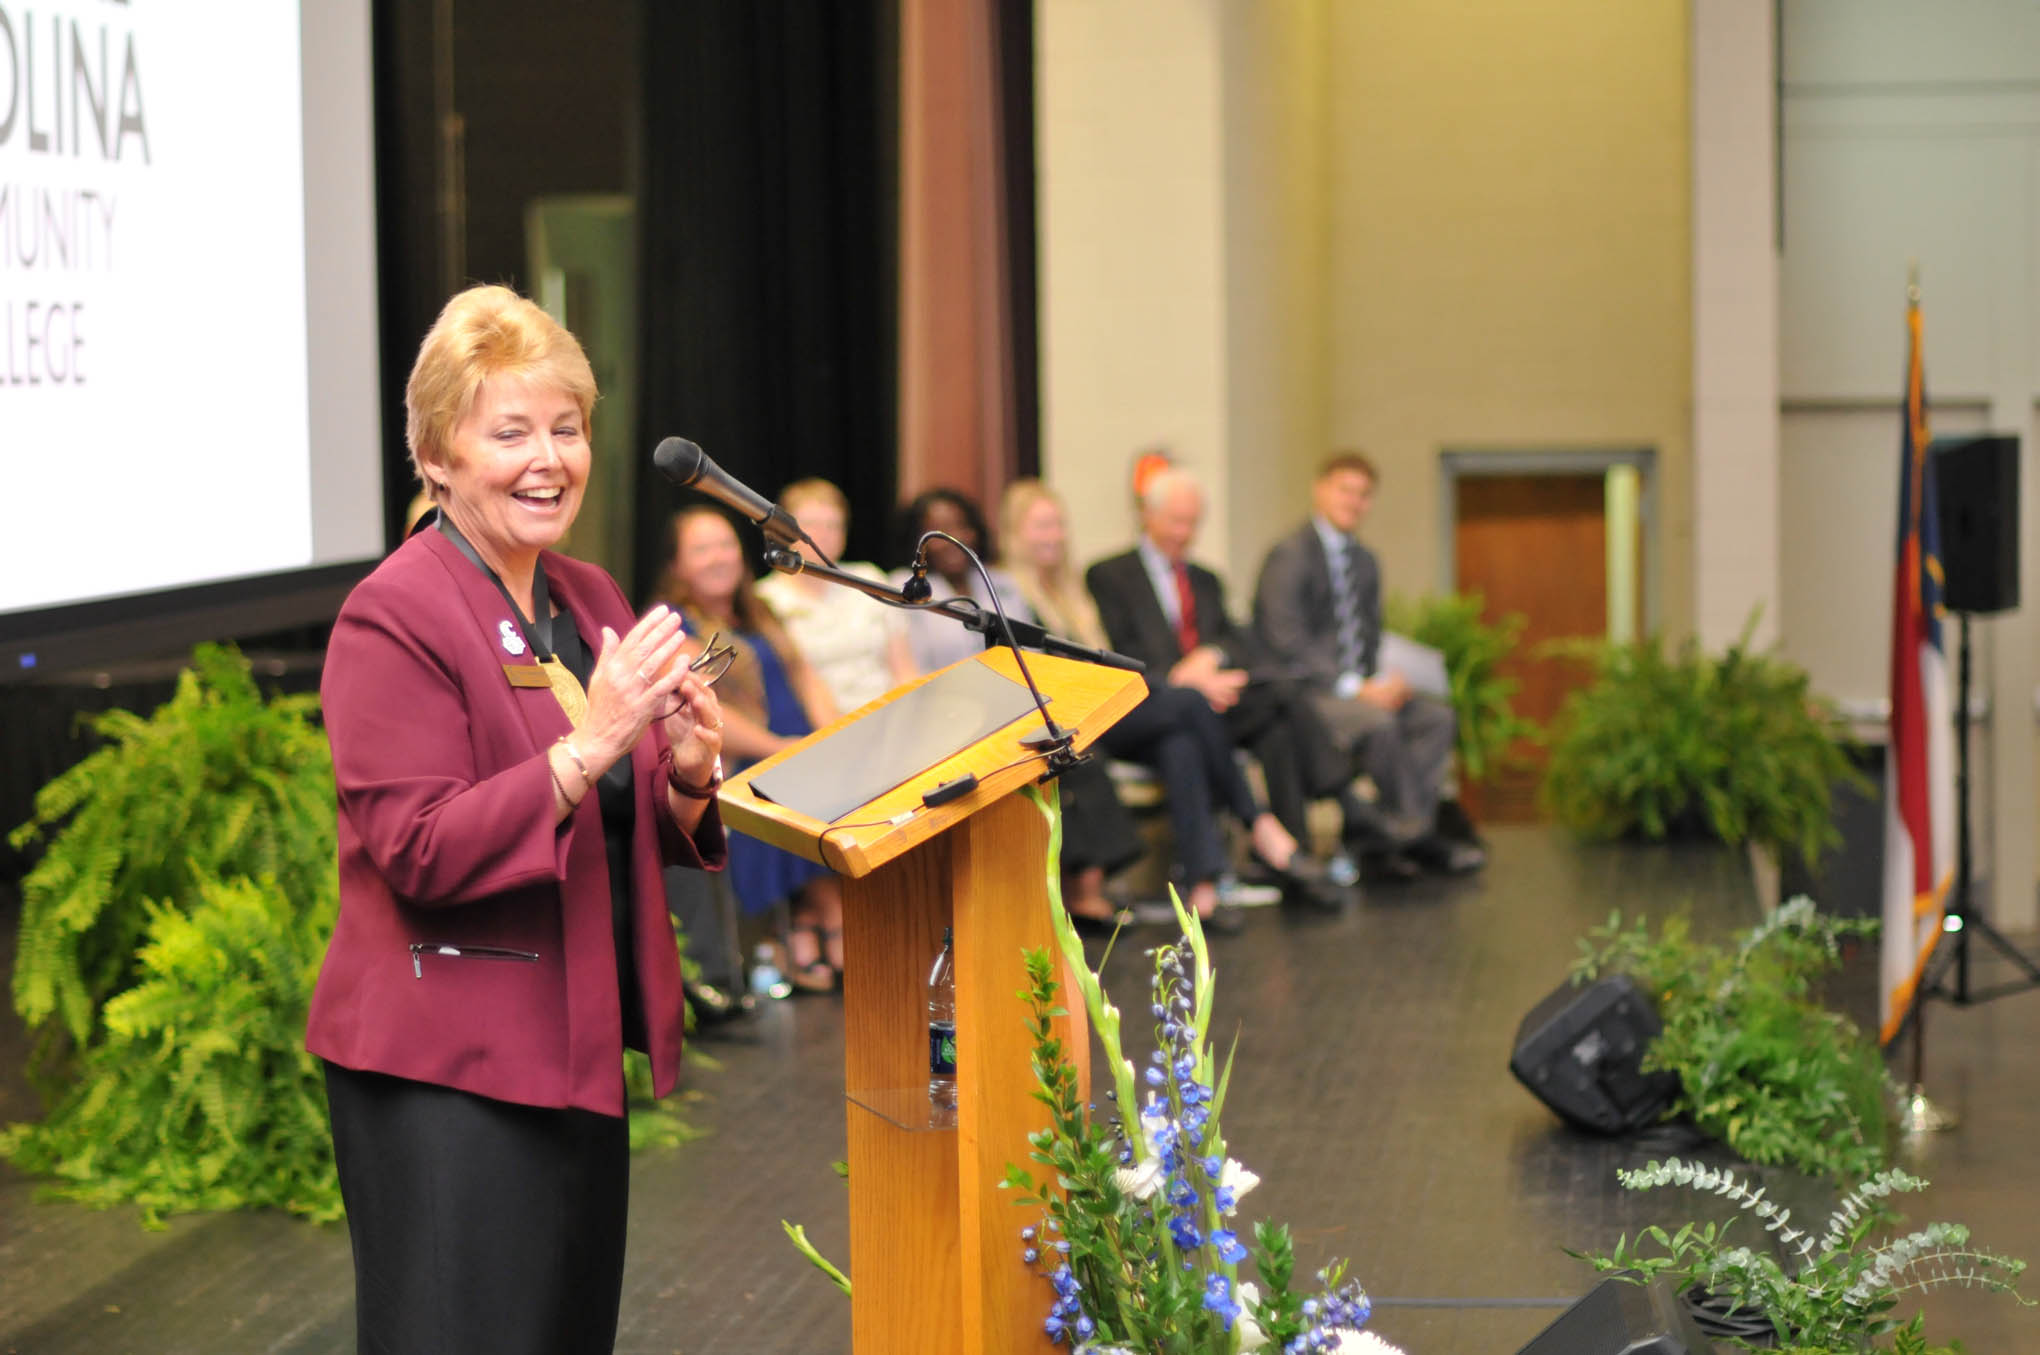 Click to enlarge,  Central Carolina Community College President Dr. Lisa M. Chapman shares a smile during her Installation as CCCC President on Sept. 26.